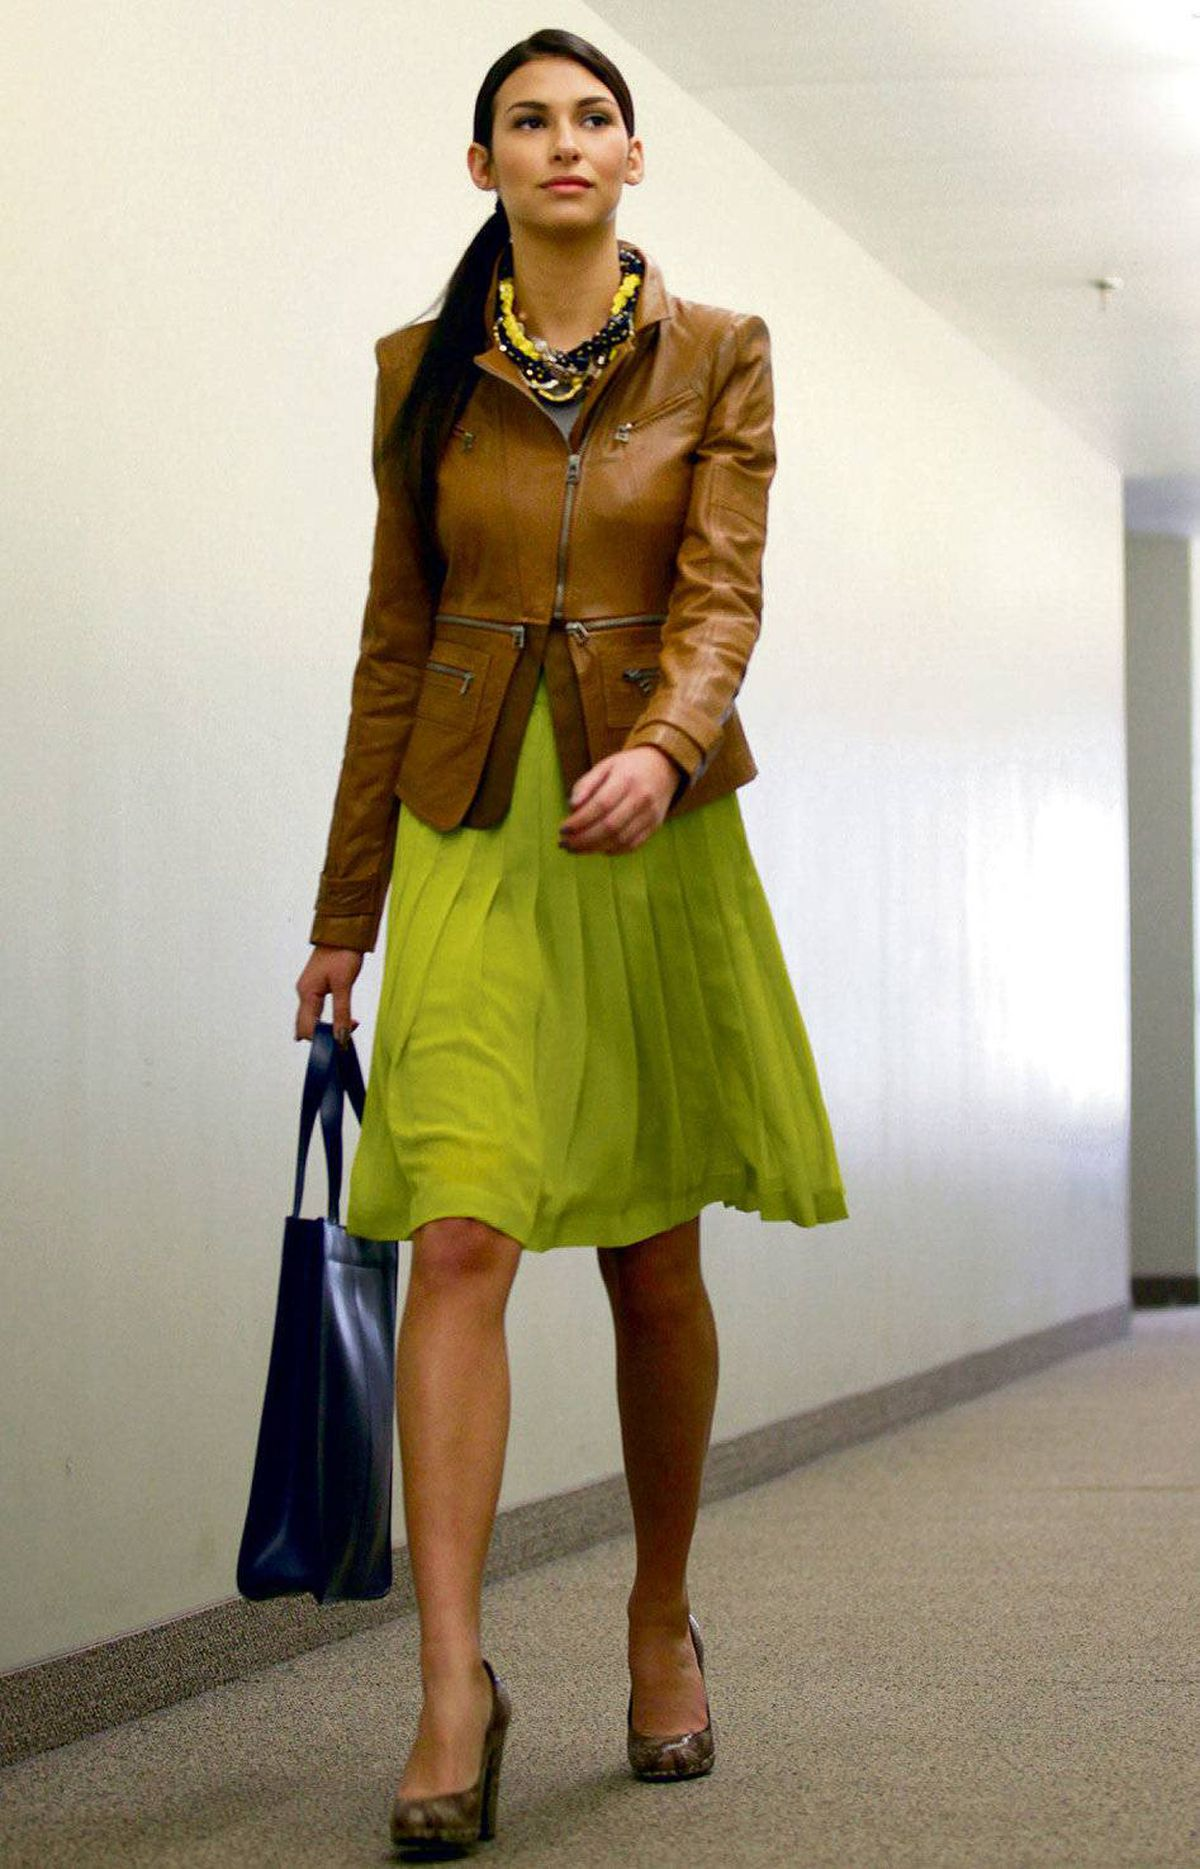 Sheer pleats, the real way BCBG skirt, $214, top, $82, jacket, $958 at BCBG. Kate Spade necklace, $395 at Holt Renfrew. Joe Fresh tote, $99 at Joe Fresh. Stuart Weitzman pumps, $350 at Davids. Styling by Alon Freeman/Judy Inc.; hair and makeup by Robert Weir for M.A.C. Cosmetics/Ford Artists.